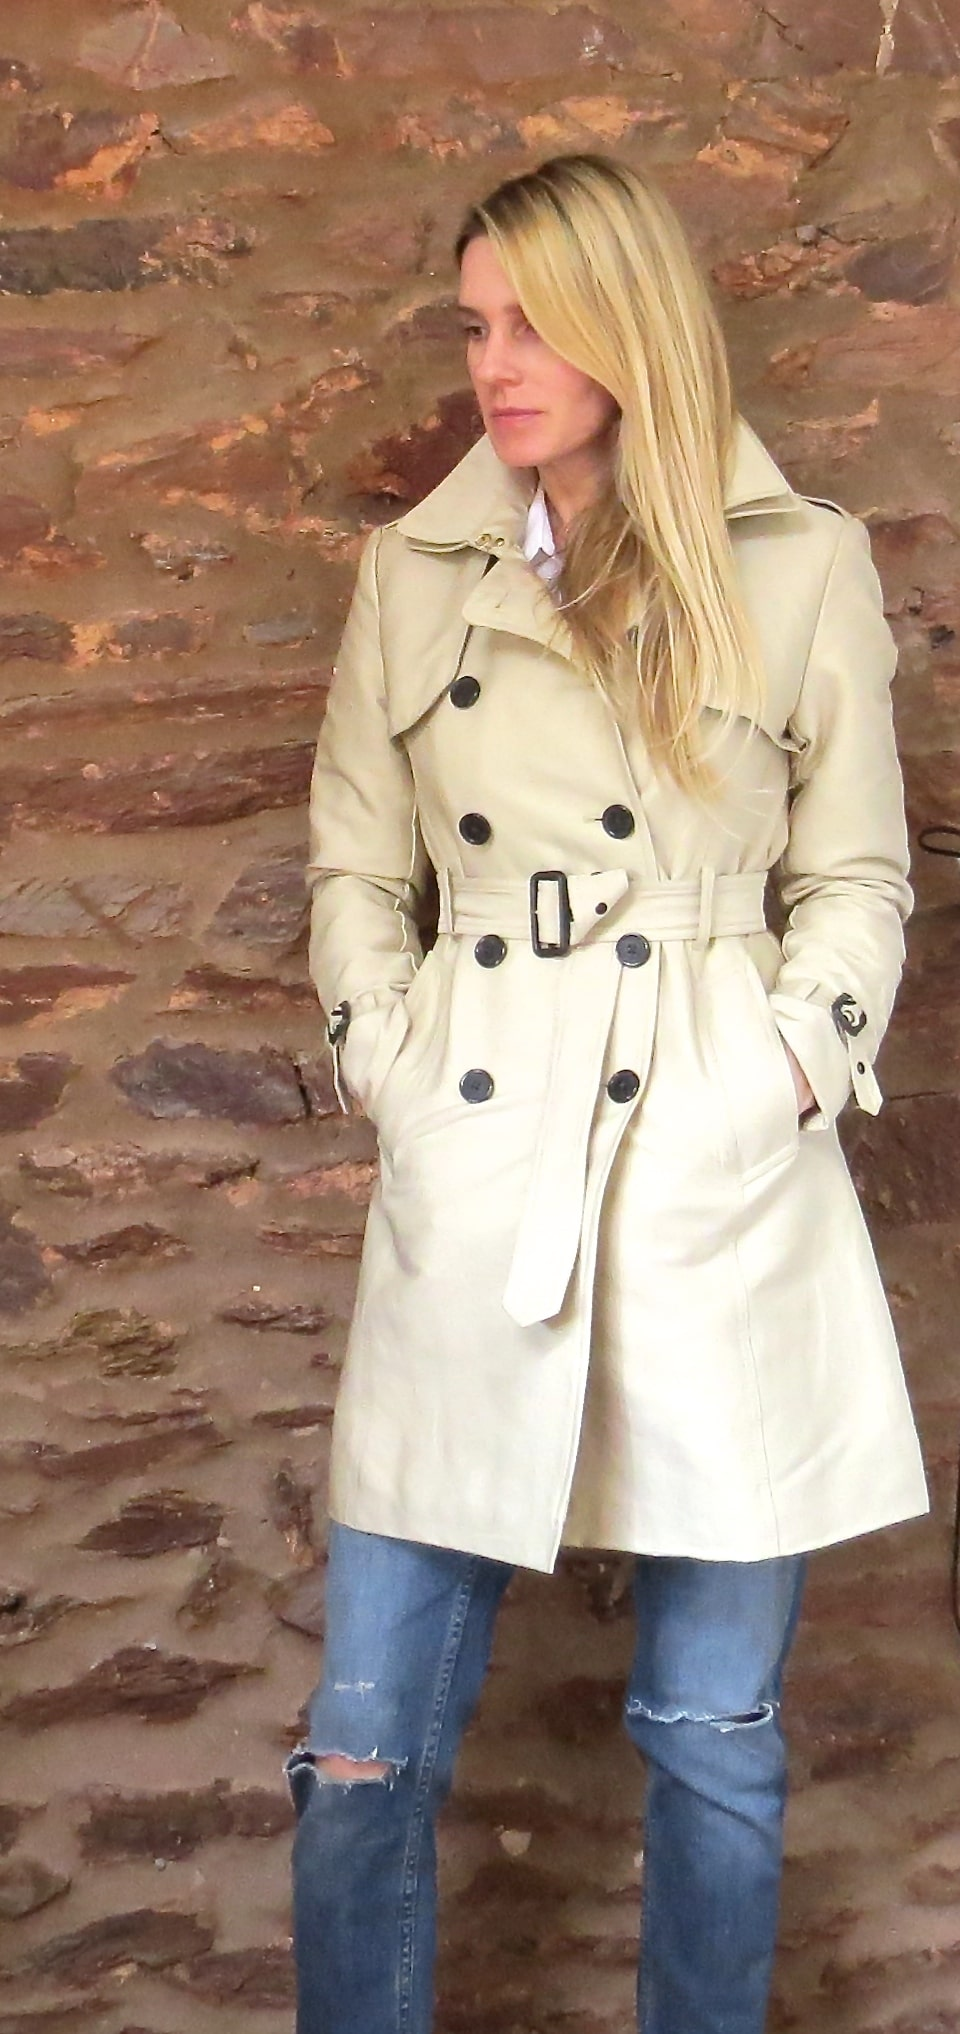 sam wearing the trench coat. what I'm wearing.